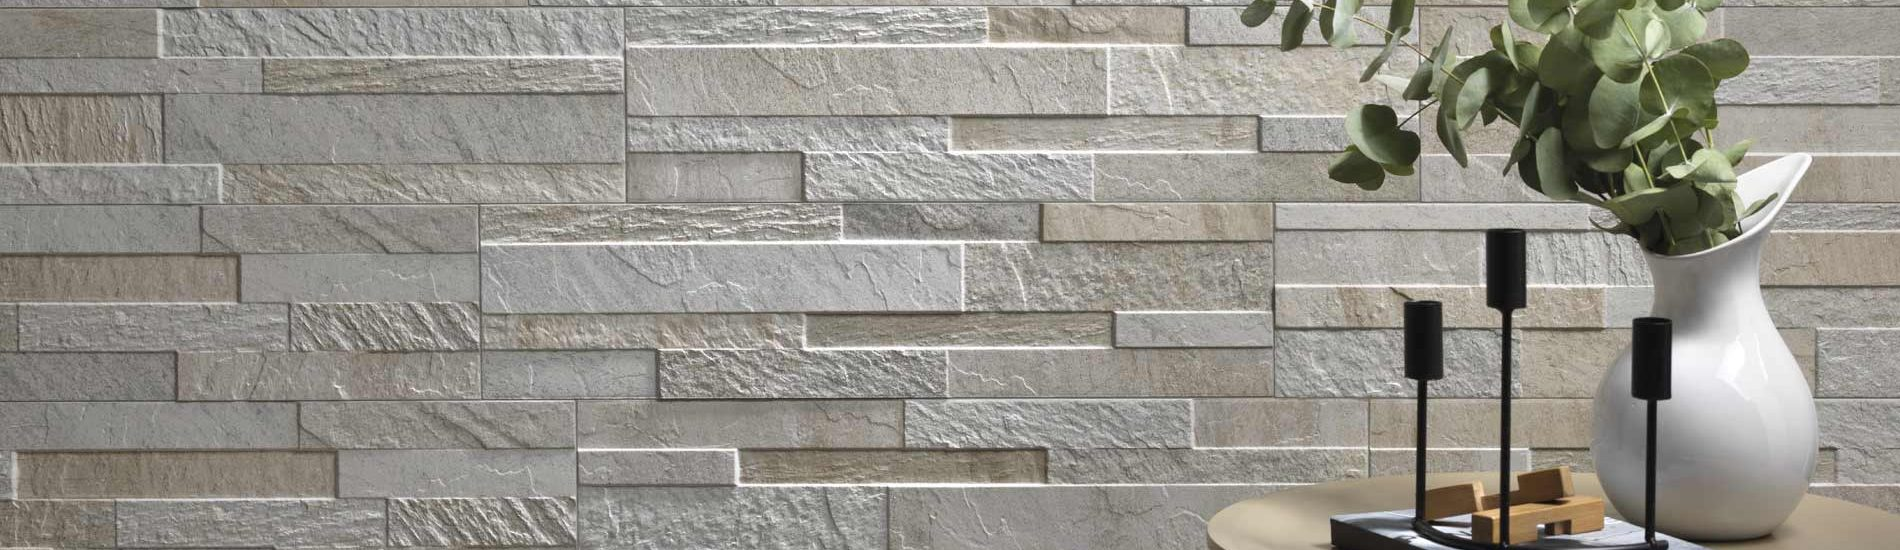 Cubics Ledger Stone Look Wall Tile